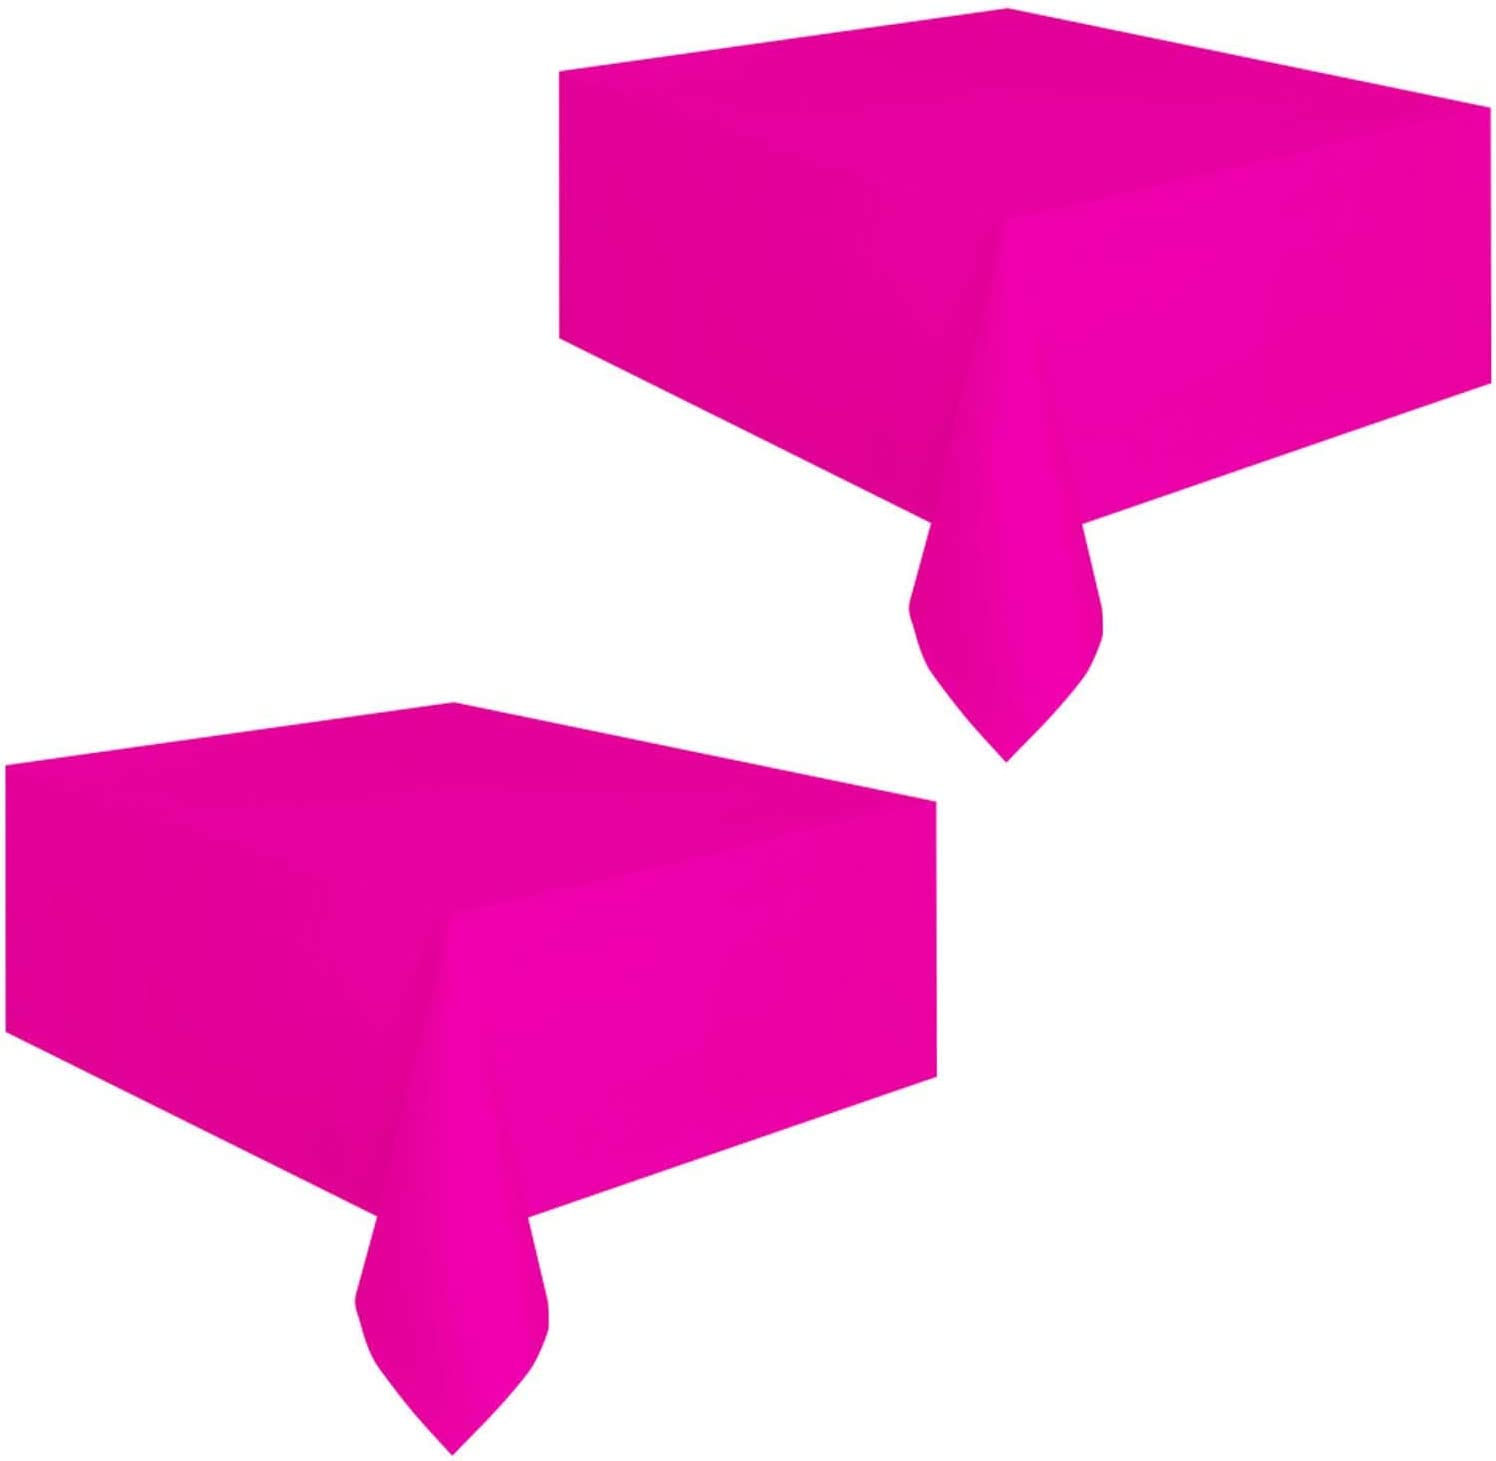 Hot Pink Party Supplies - Bright Neon Pink Plastic Table Covers (54